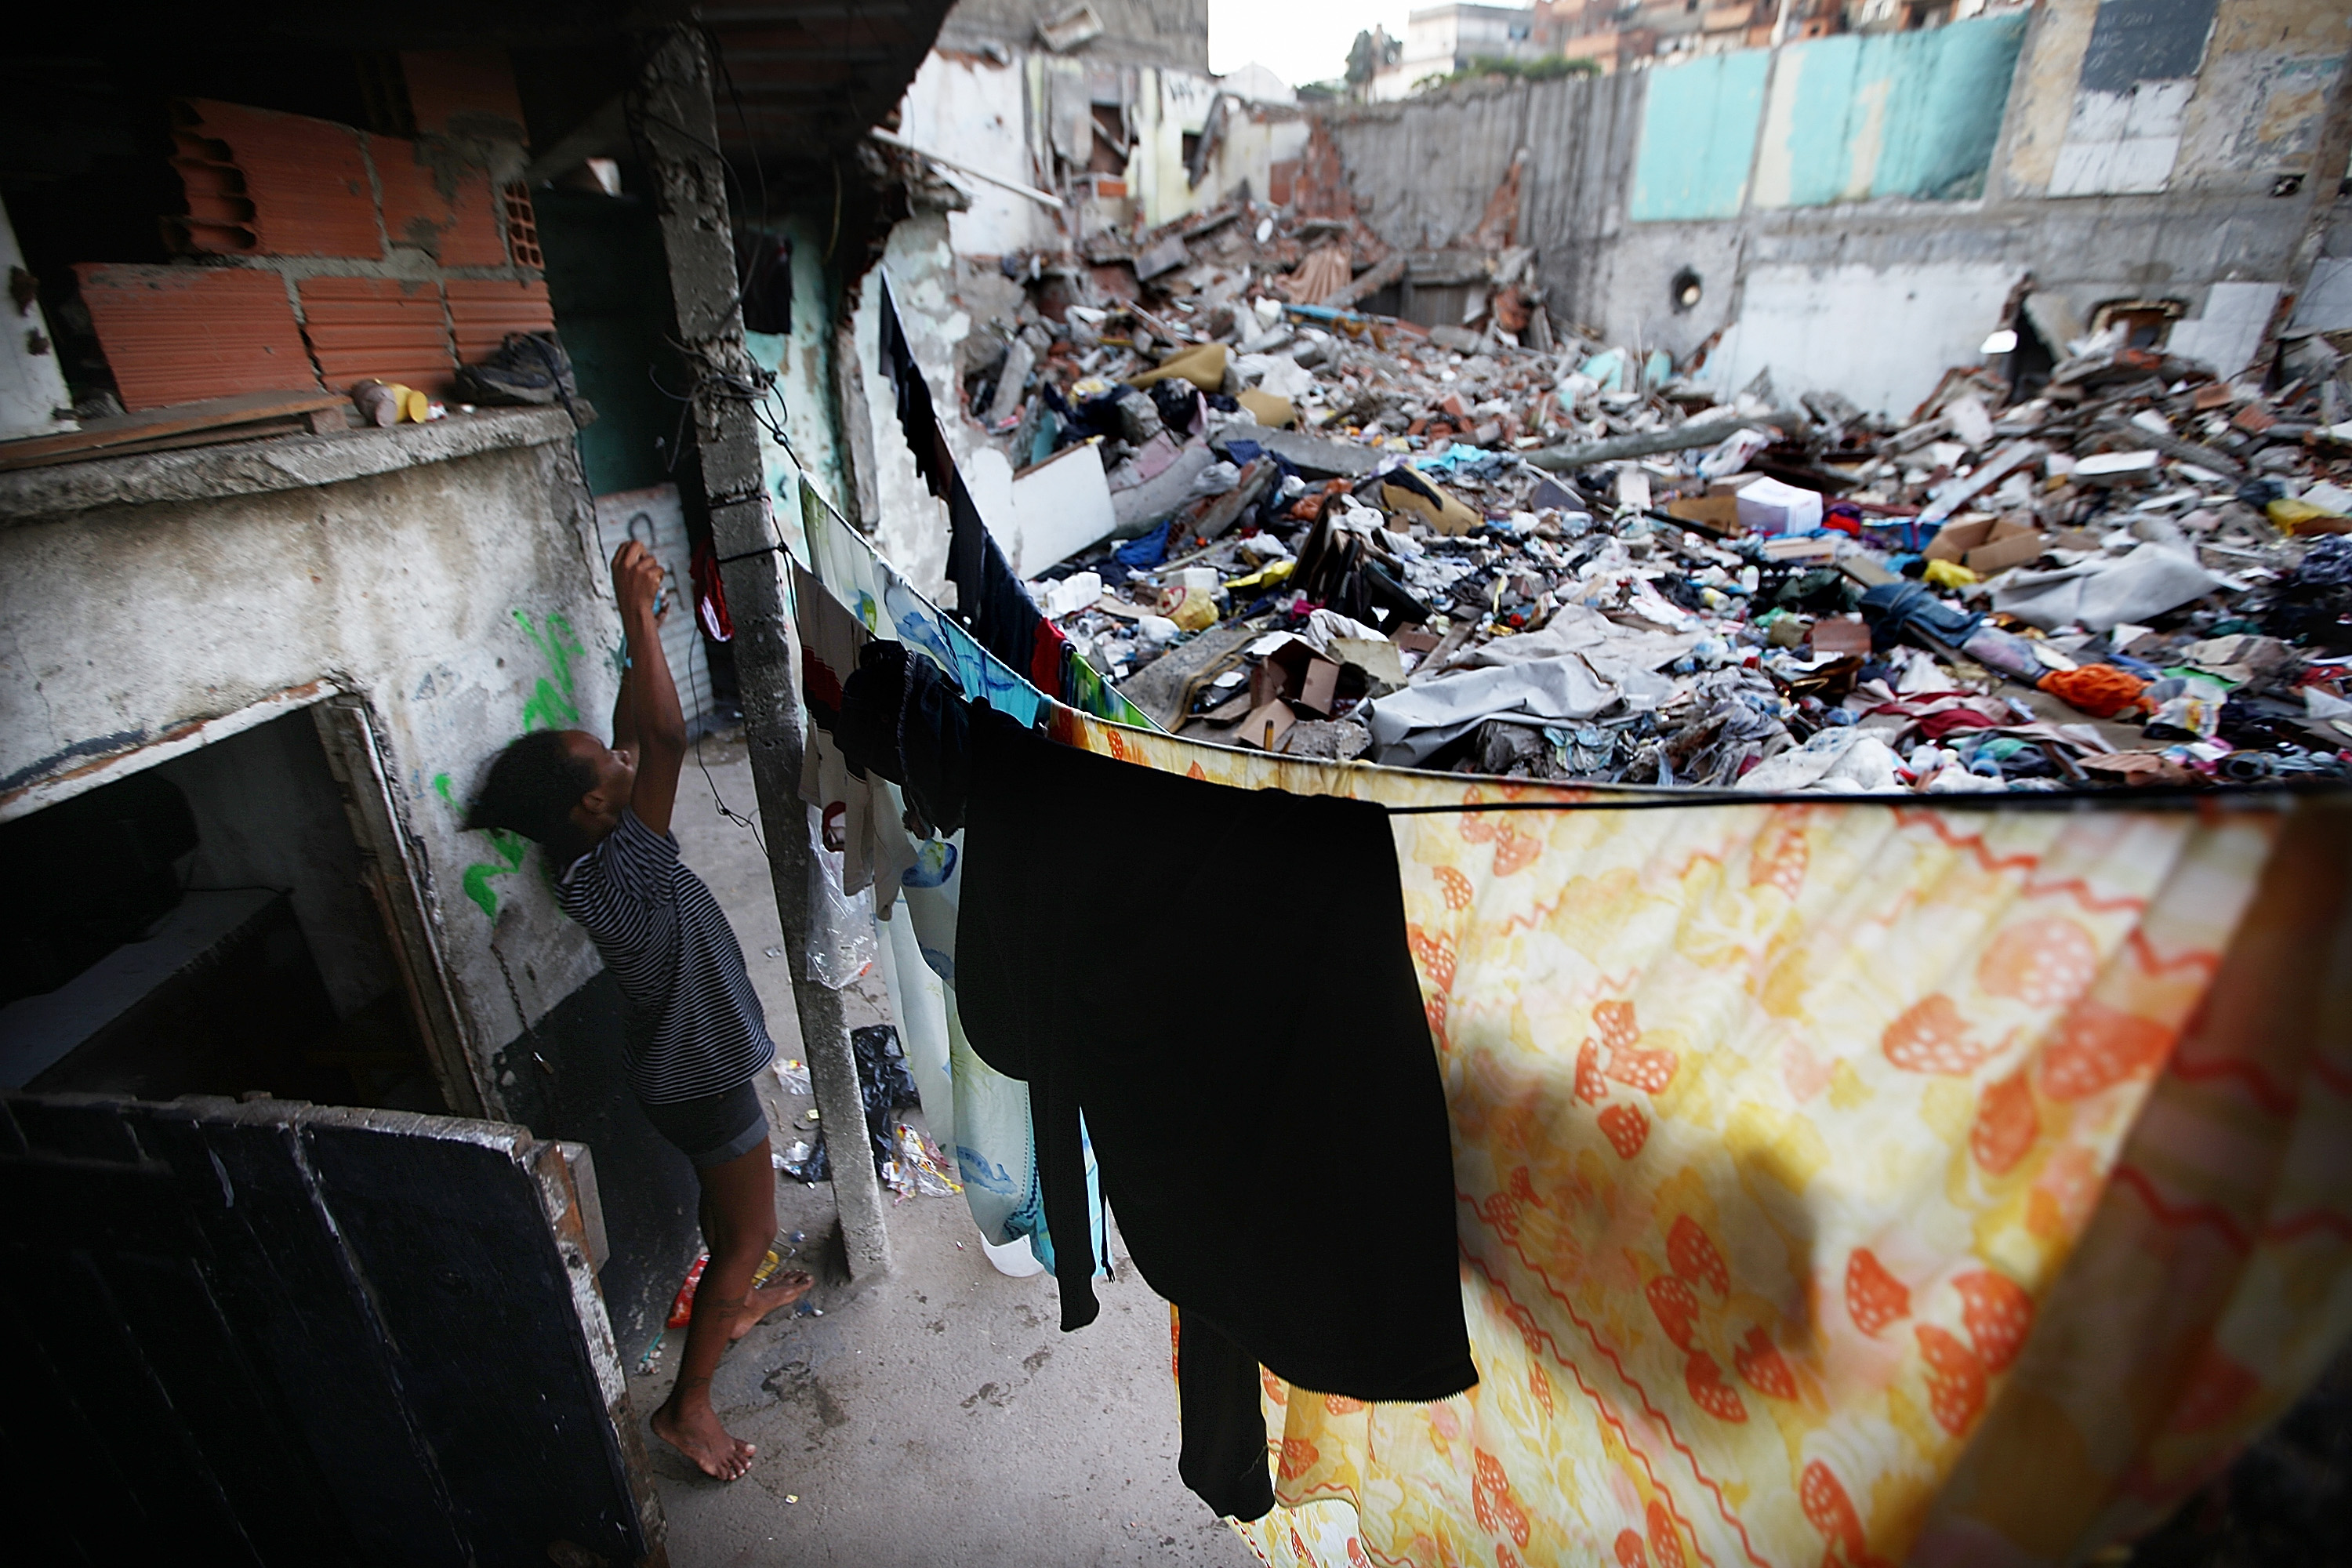 A woman hangs laundry next to the remains of demolished homes in the Metro Mangueira favela, located near Maracana stadium, on May 22, 2014 in Rio de Janeiro.